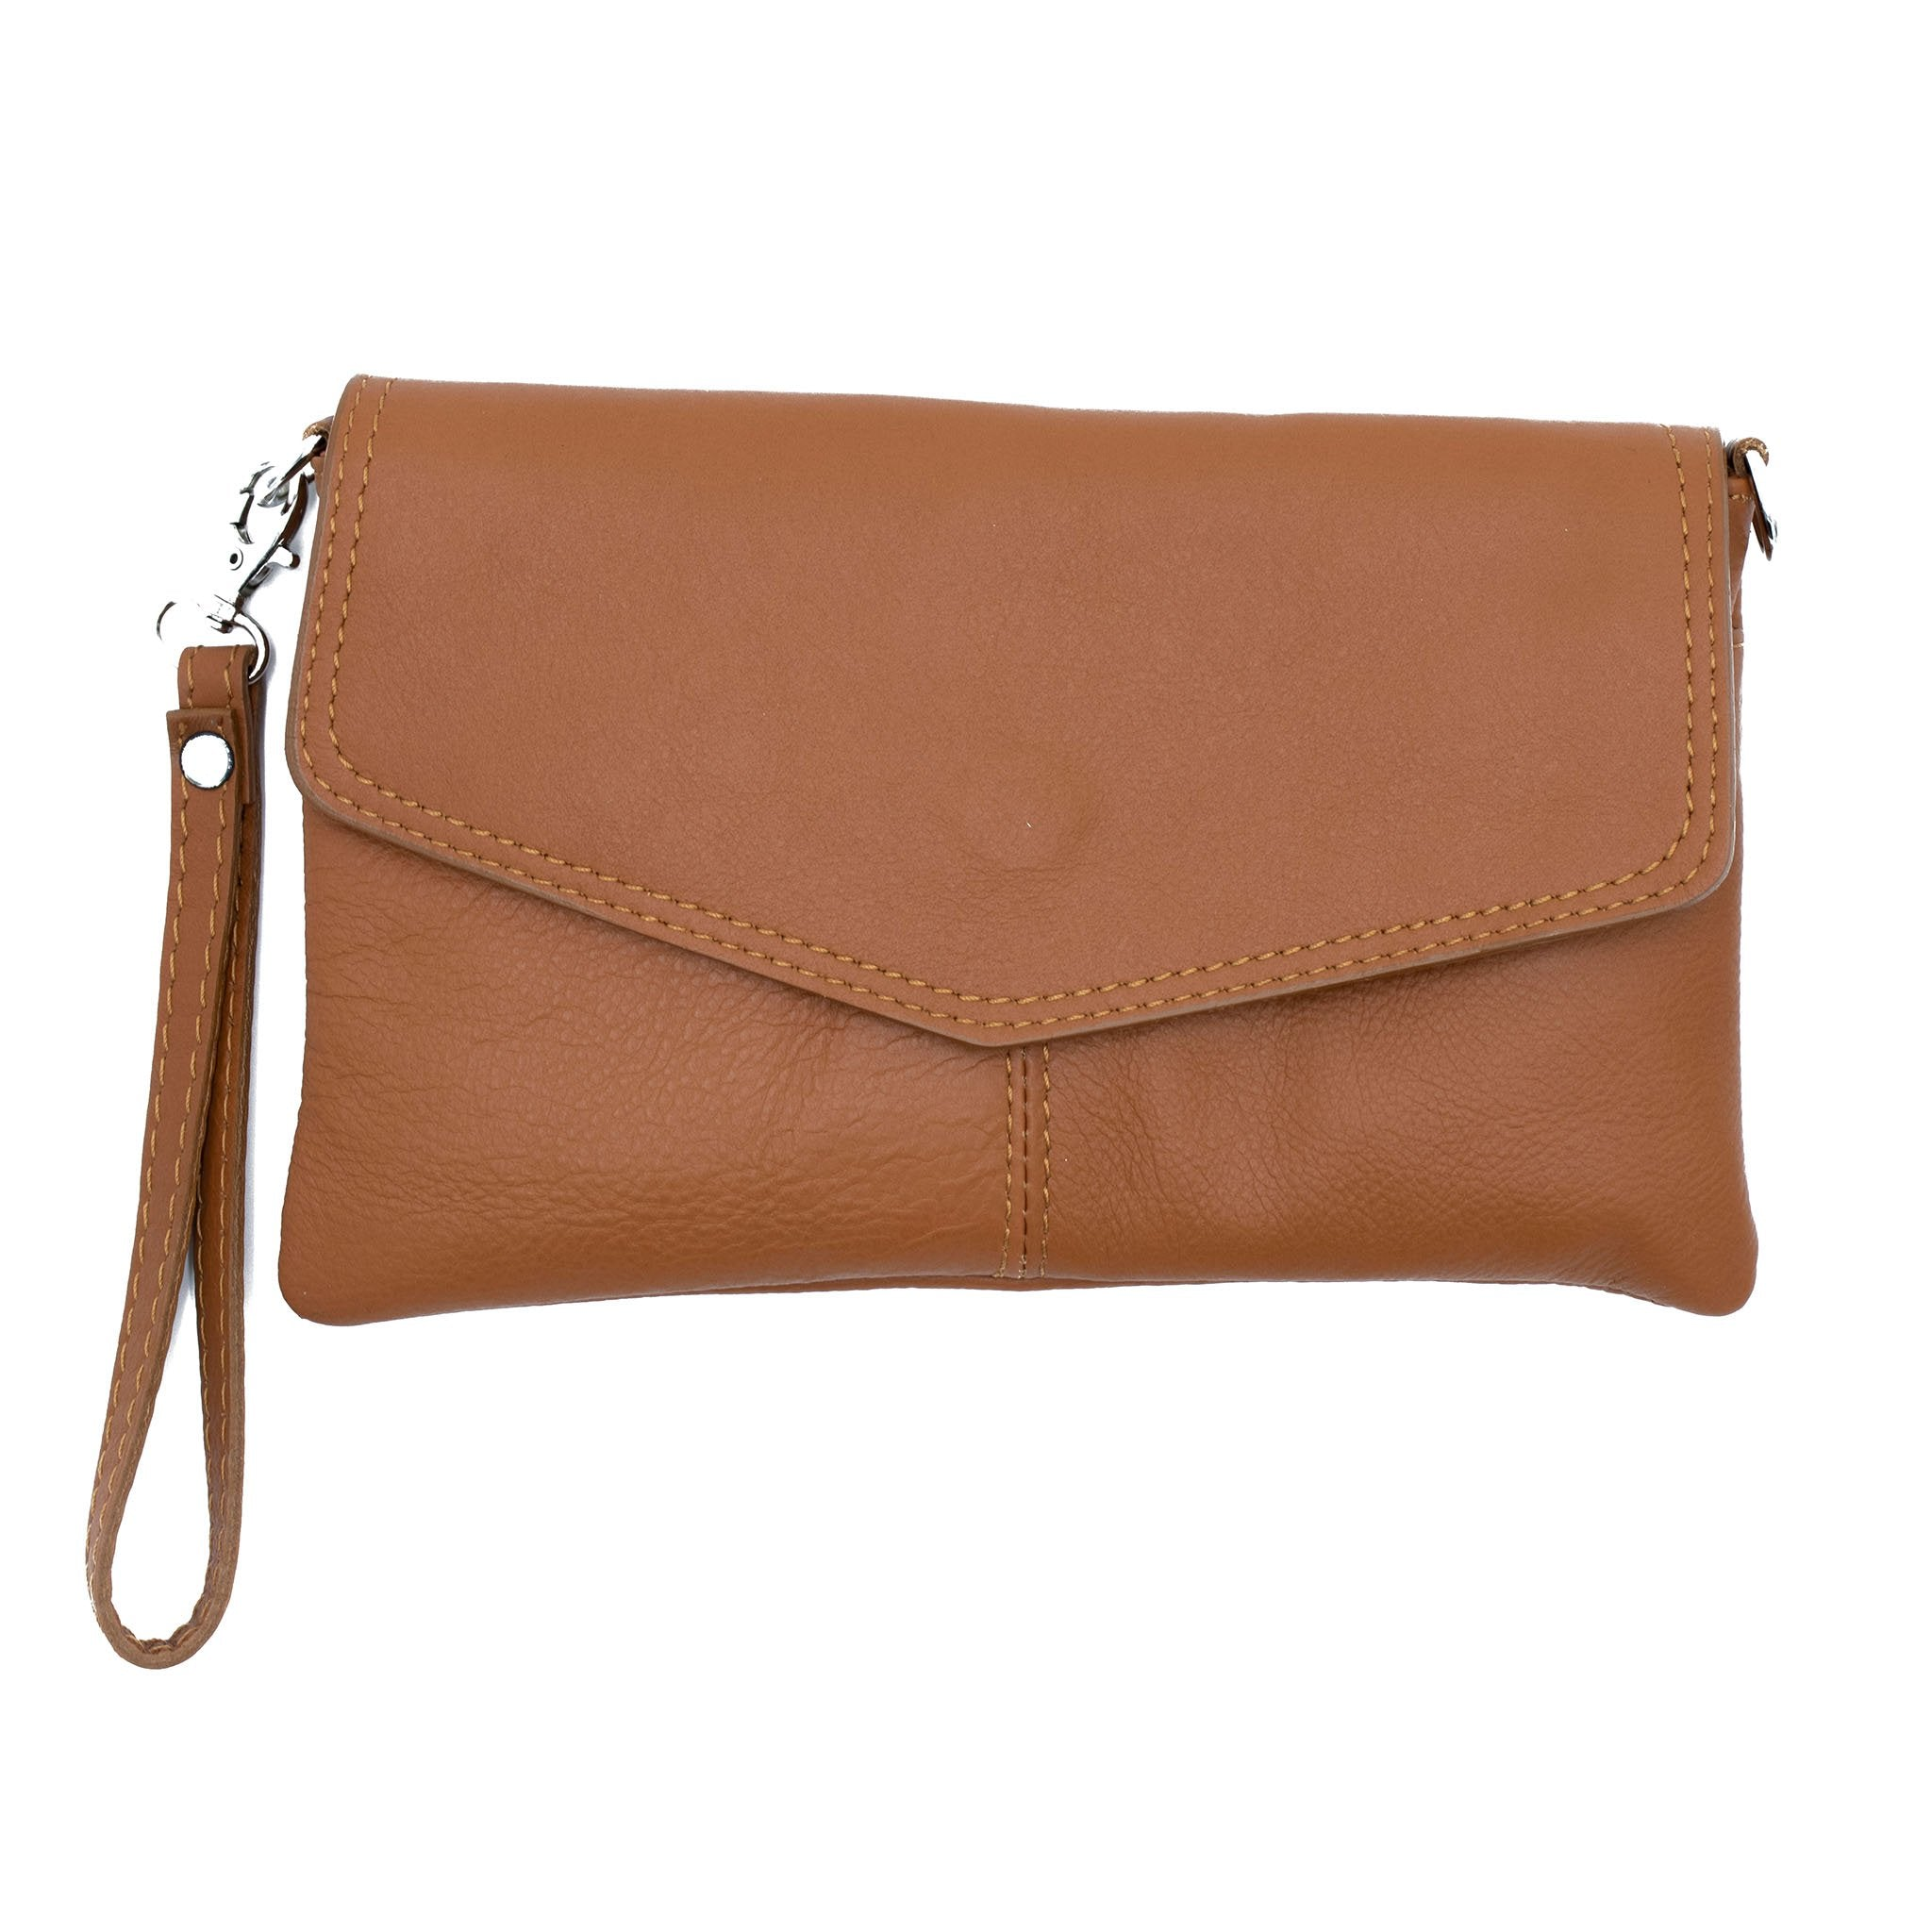 Allegra Soft Leather Italian Clutch Bag in brown